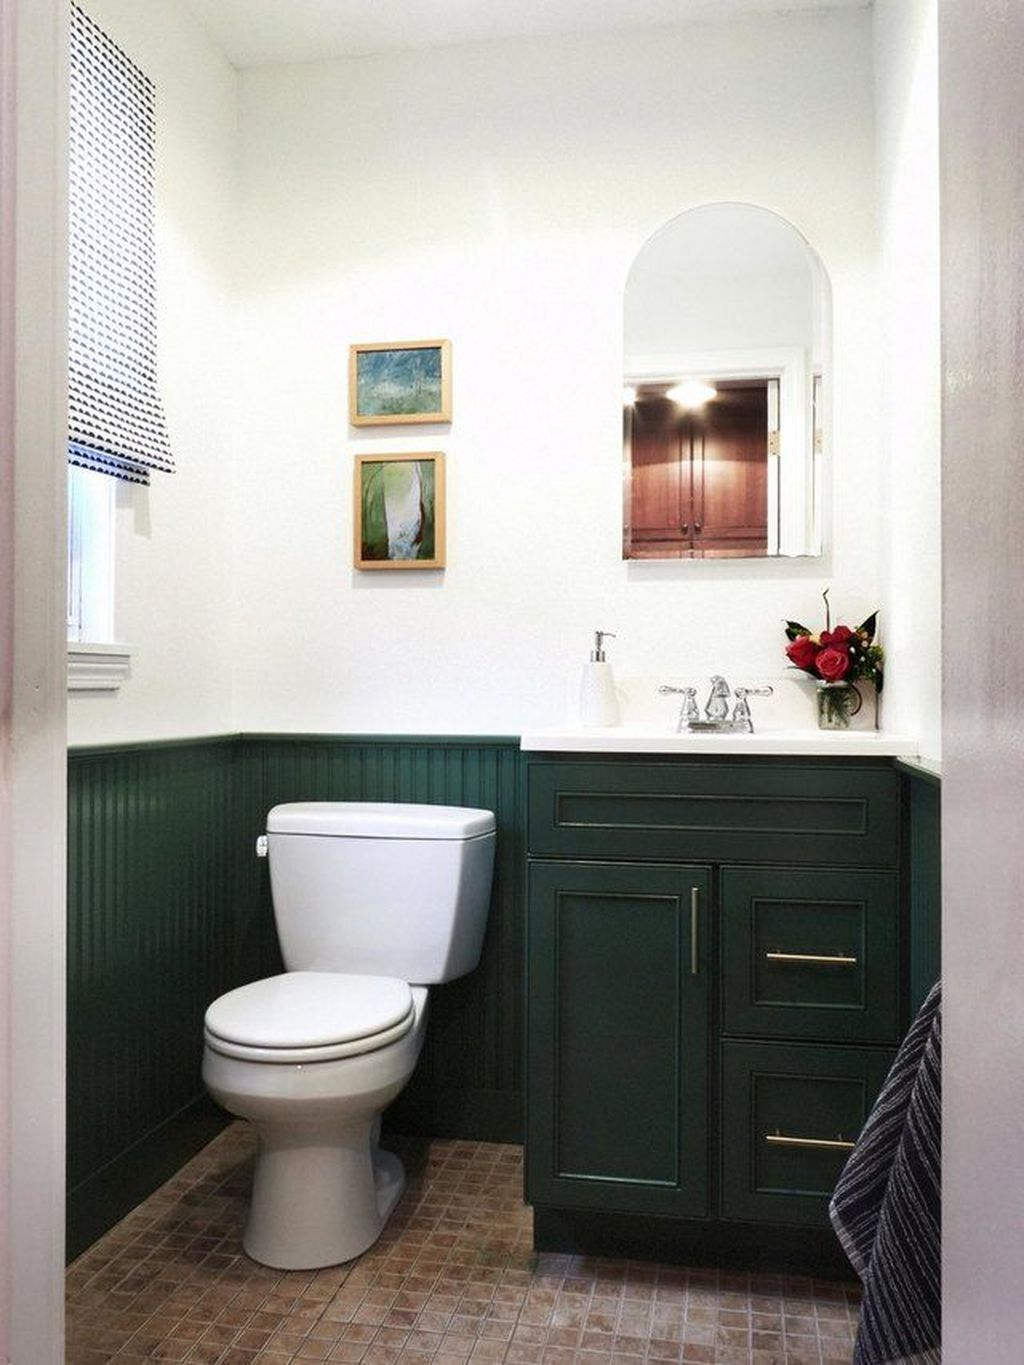 Awesome 46 Incredible Bathroom Cabinet Paint Color Ideas More At Https Homystyle Com 2018 10 Painting Bathroom Cabinets Diy Bathroom Makeover Green Bathroom [ 1365 x 1024 Pixel ]